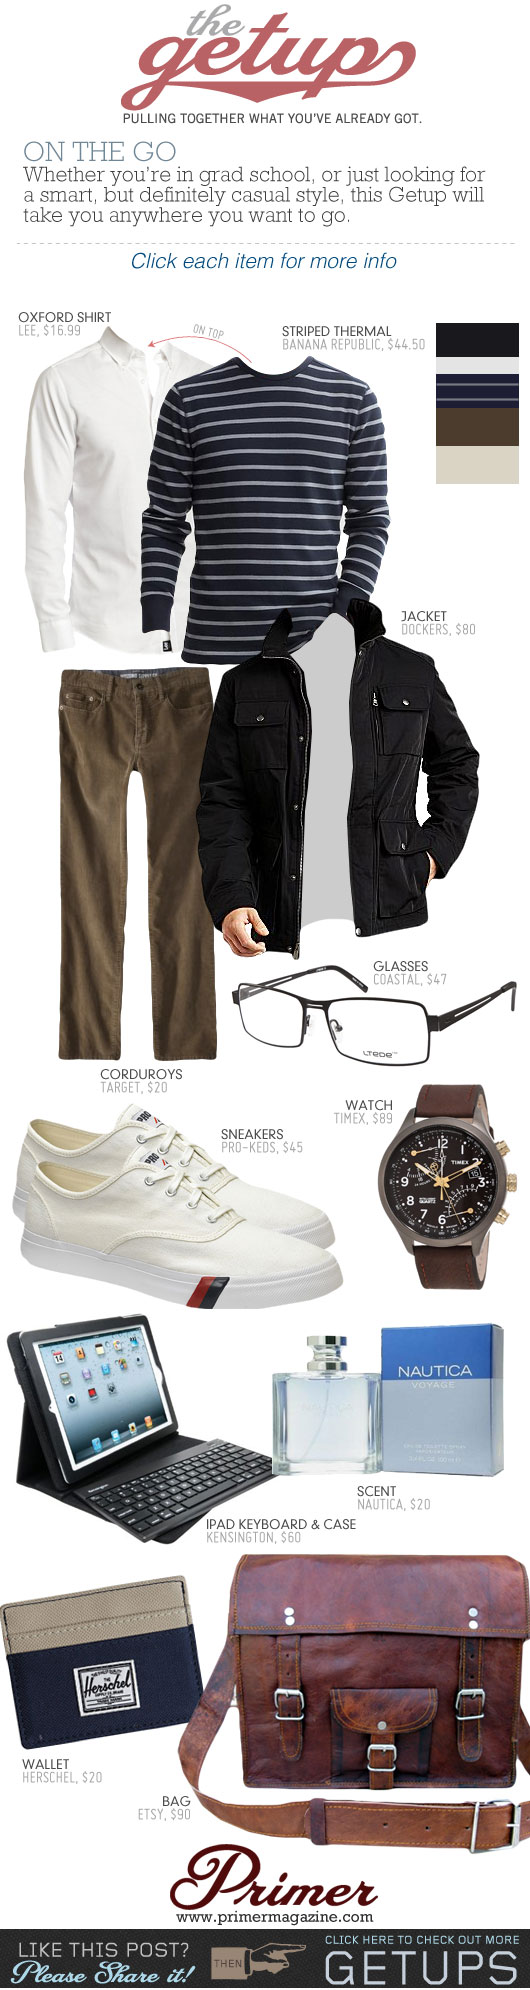 Getup On the Go - Black jacket, white sneakers, brown pants, striped shirt